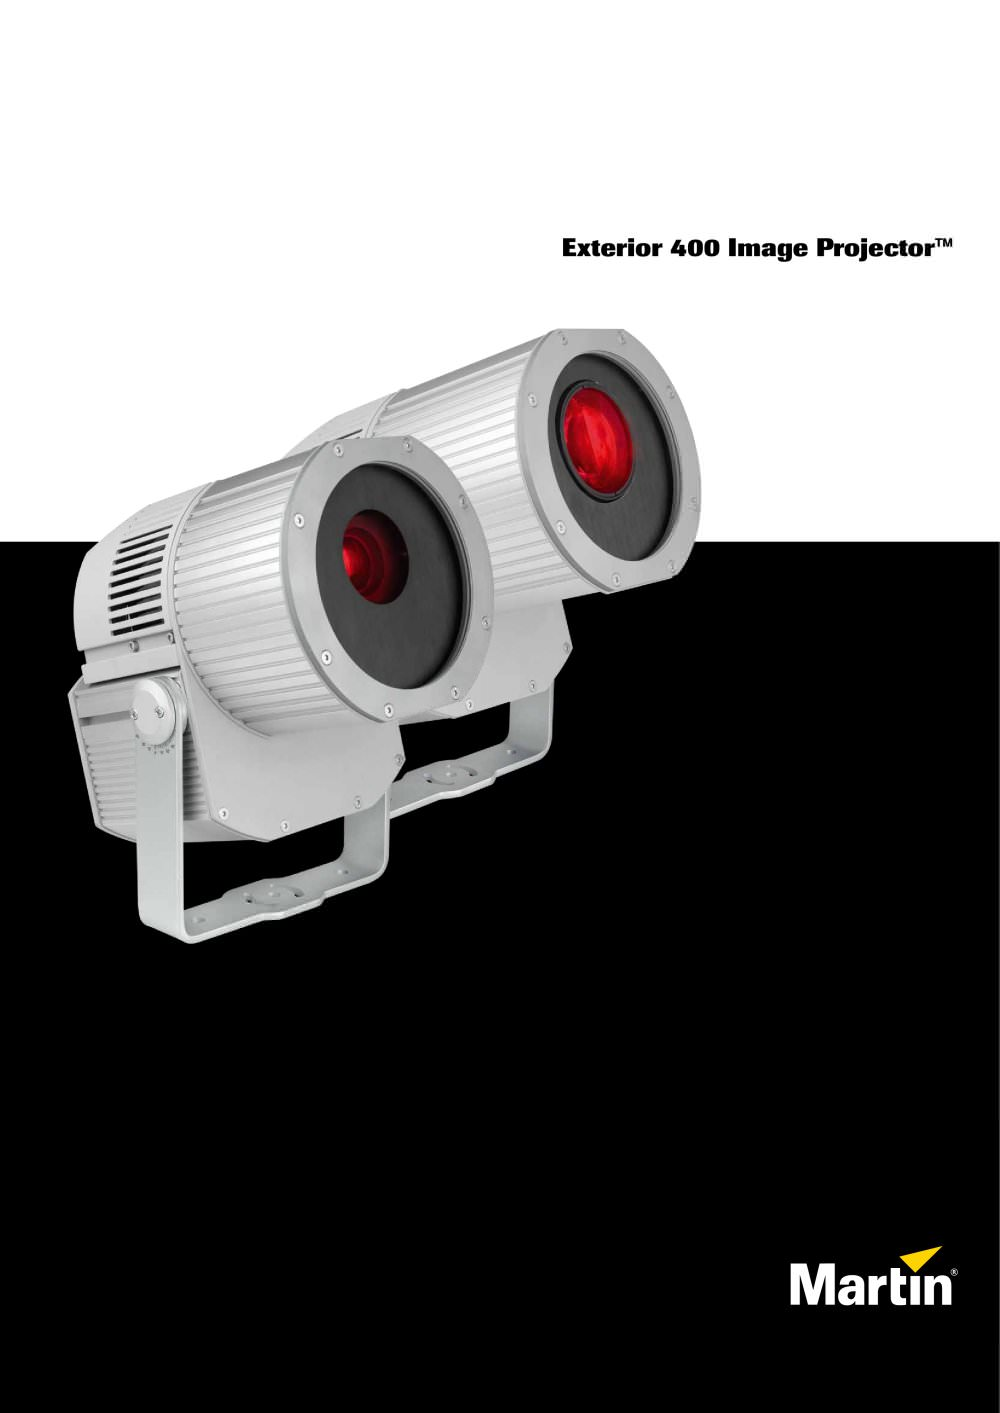 Exterior 400 Image Projector   1 / 5 Pages